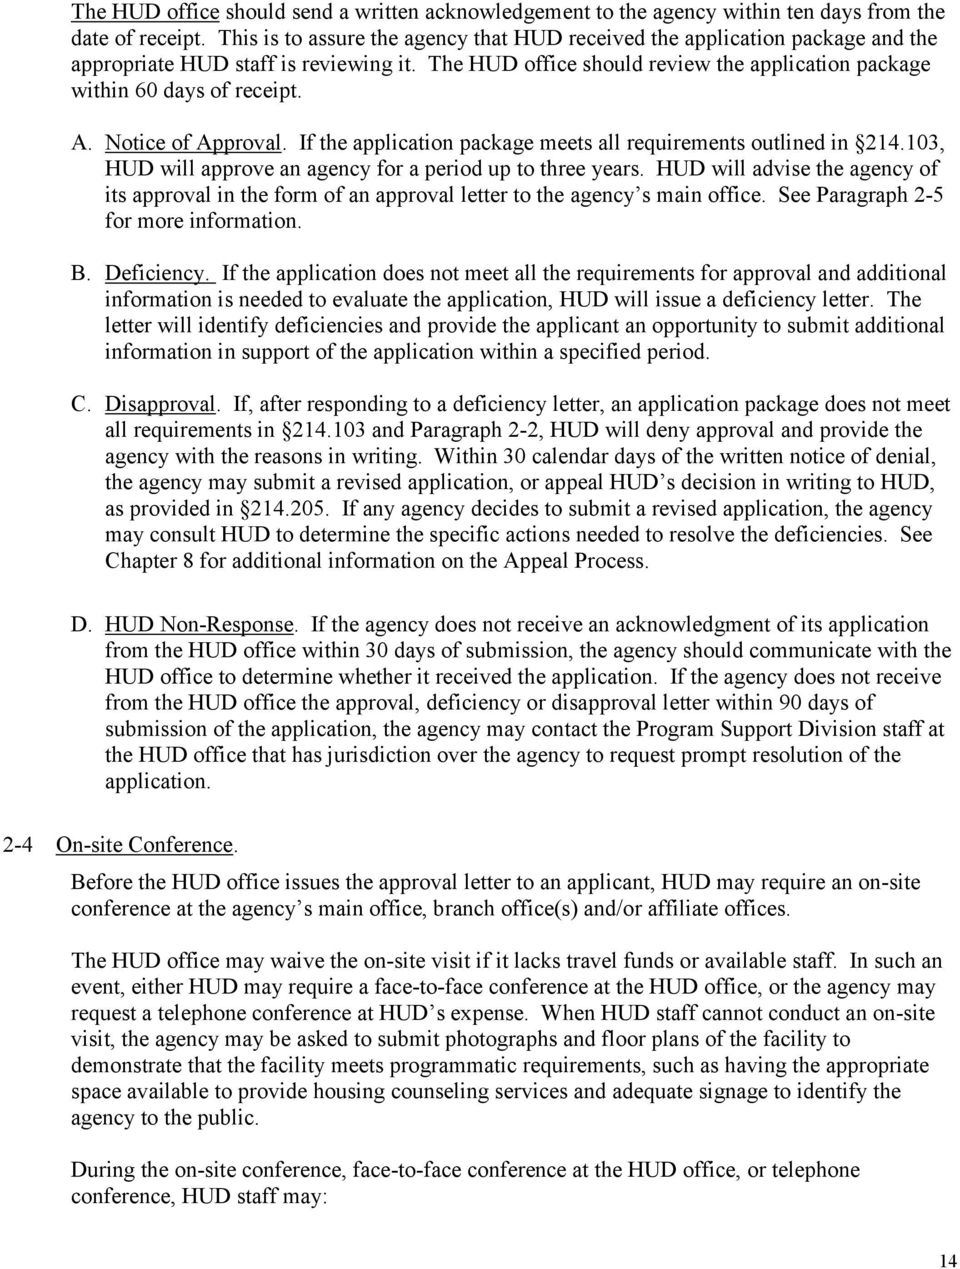 Notice of Approval. If the application package meets all requirements outlined in 214.103, HUD will approve an agency for a period up to three years.